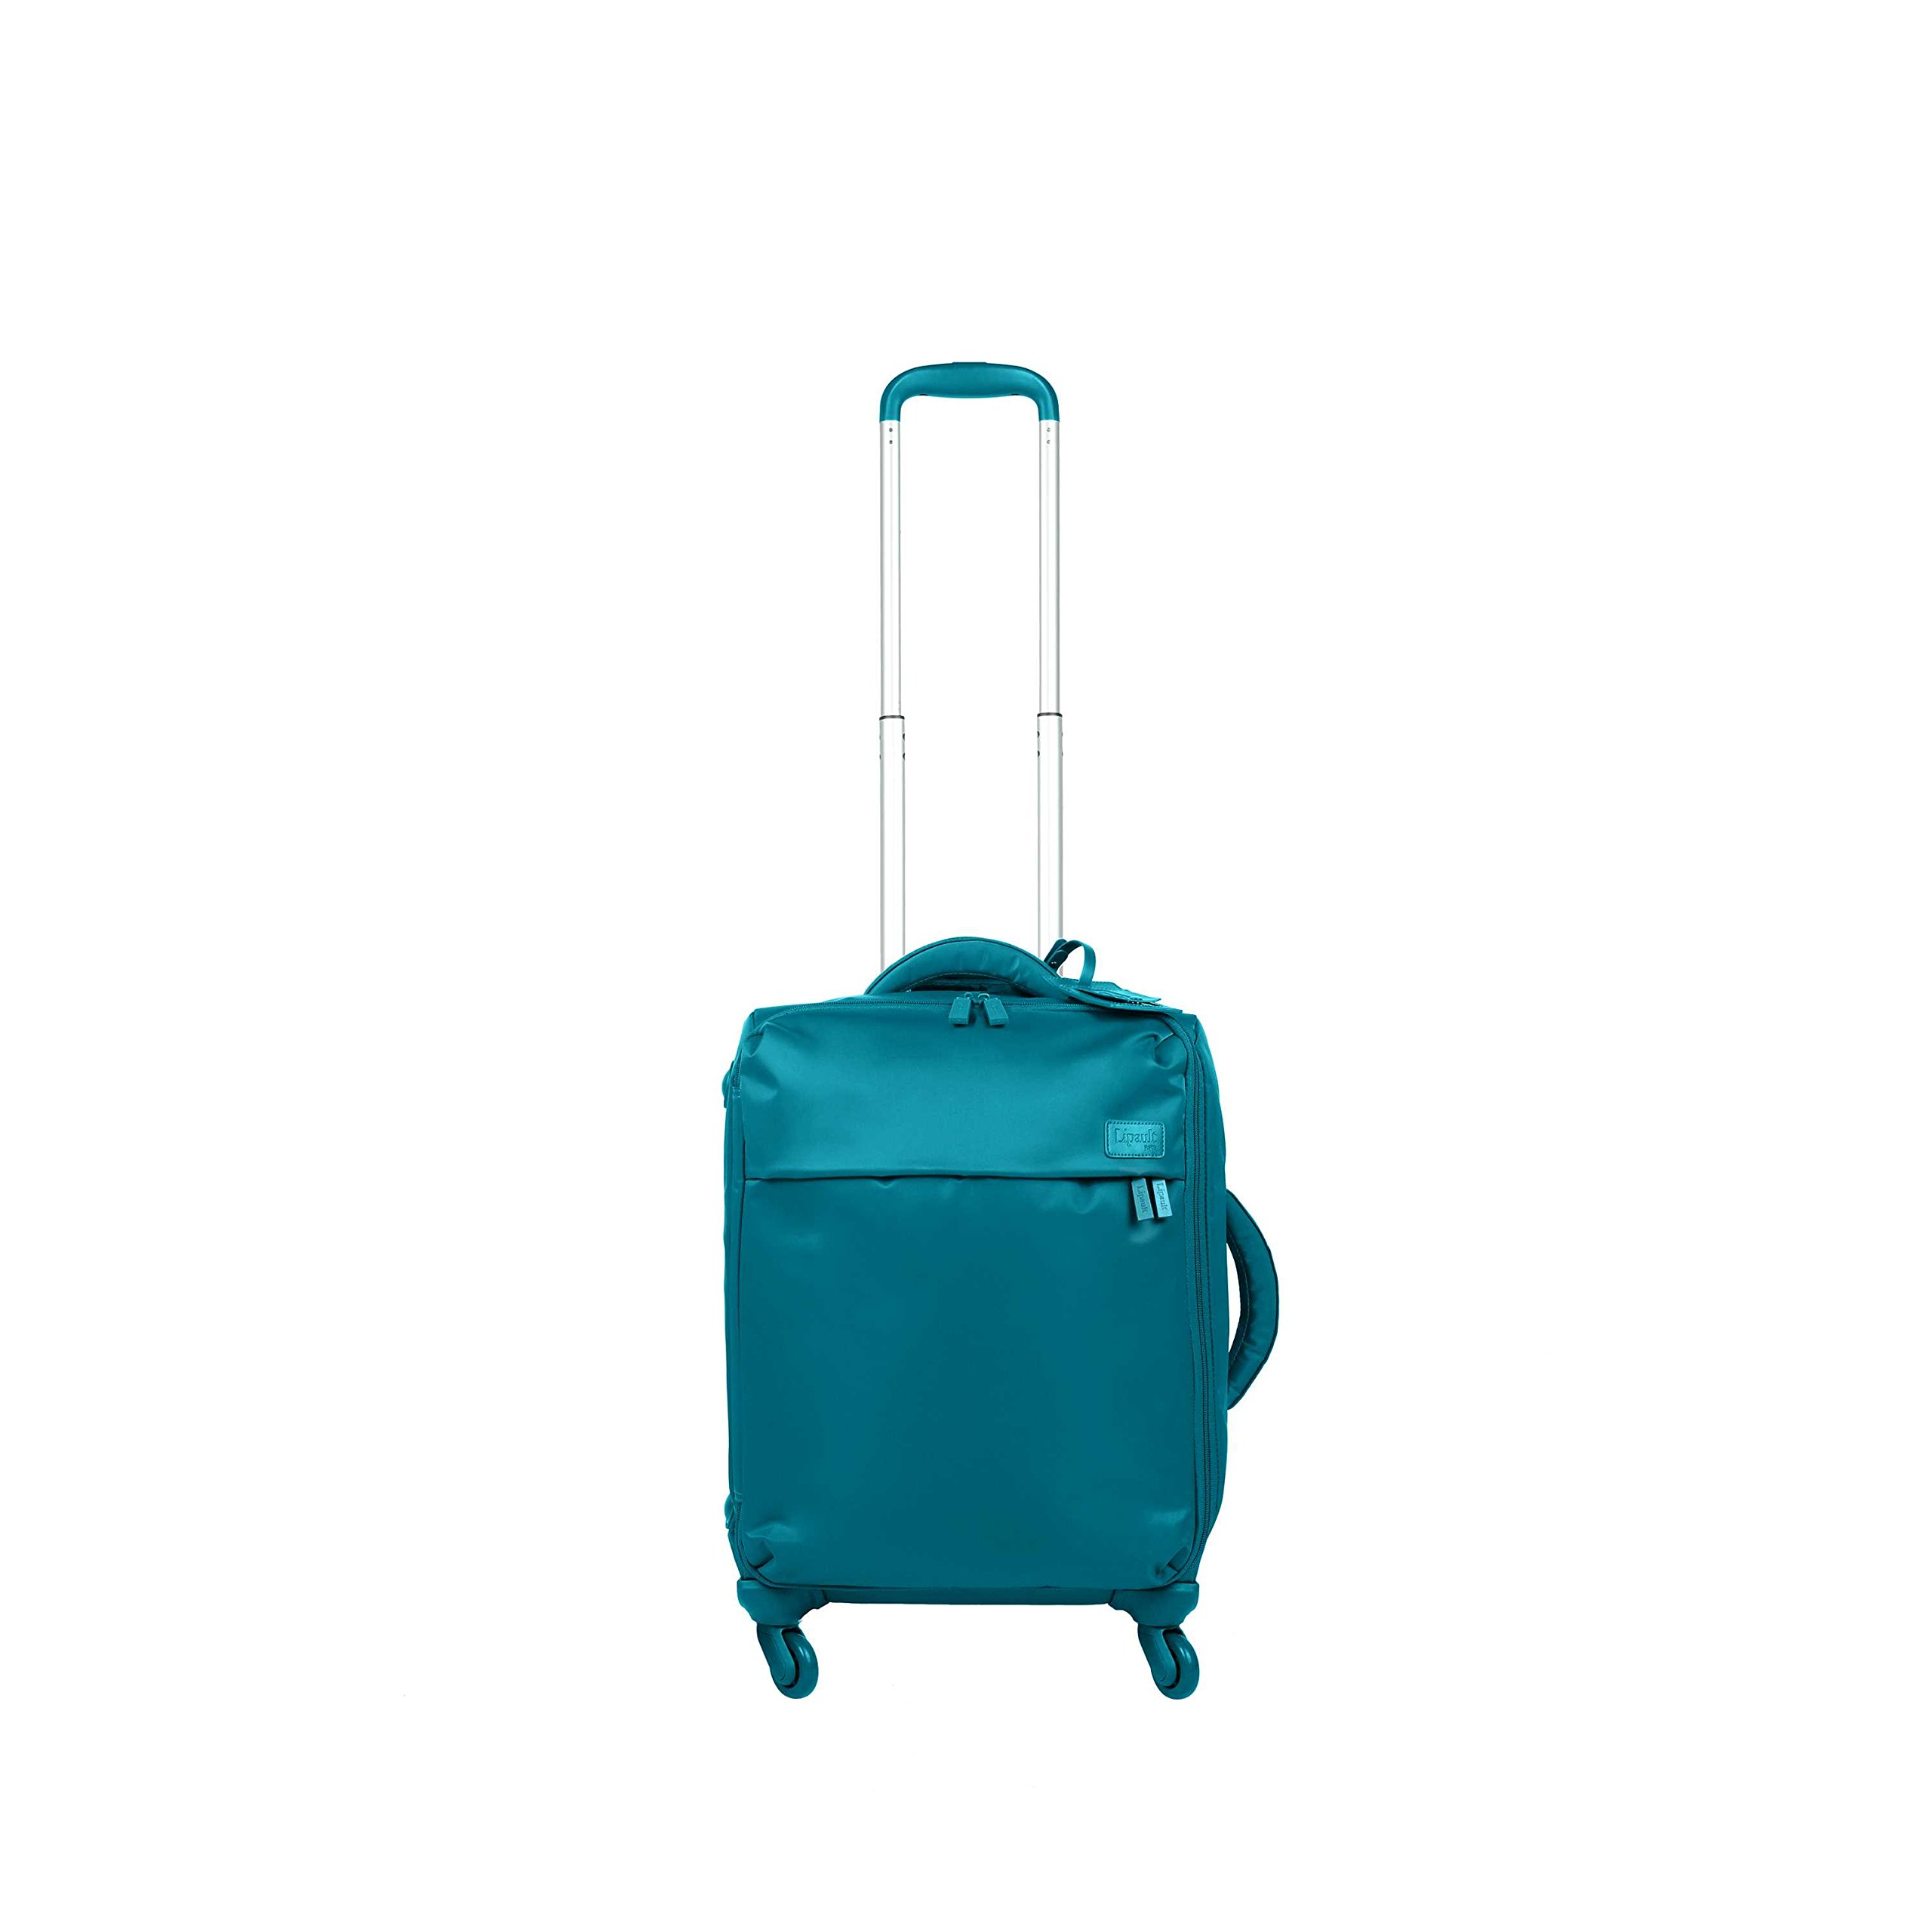 Lipault Luggage Original Plume 20'' Spinner Suitcase,Aqua,One Size by Lipault